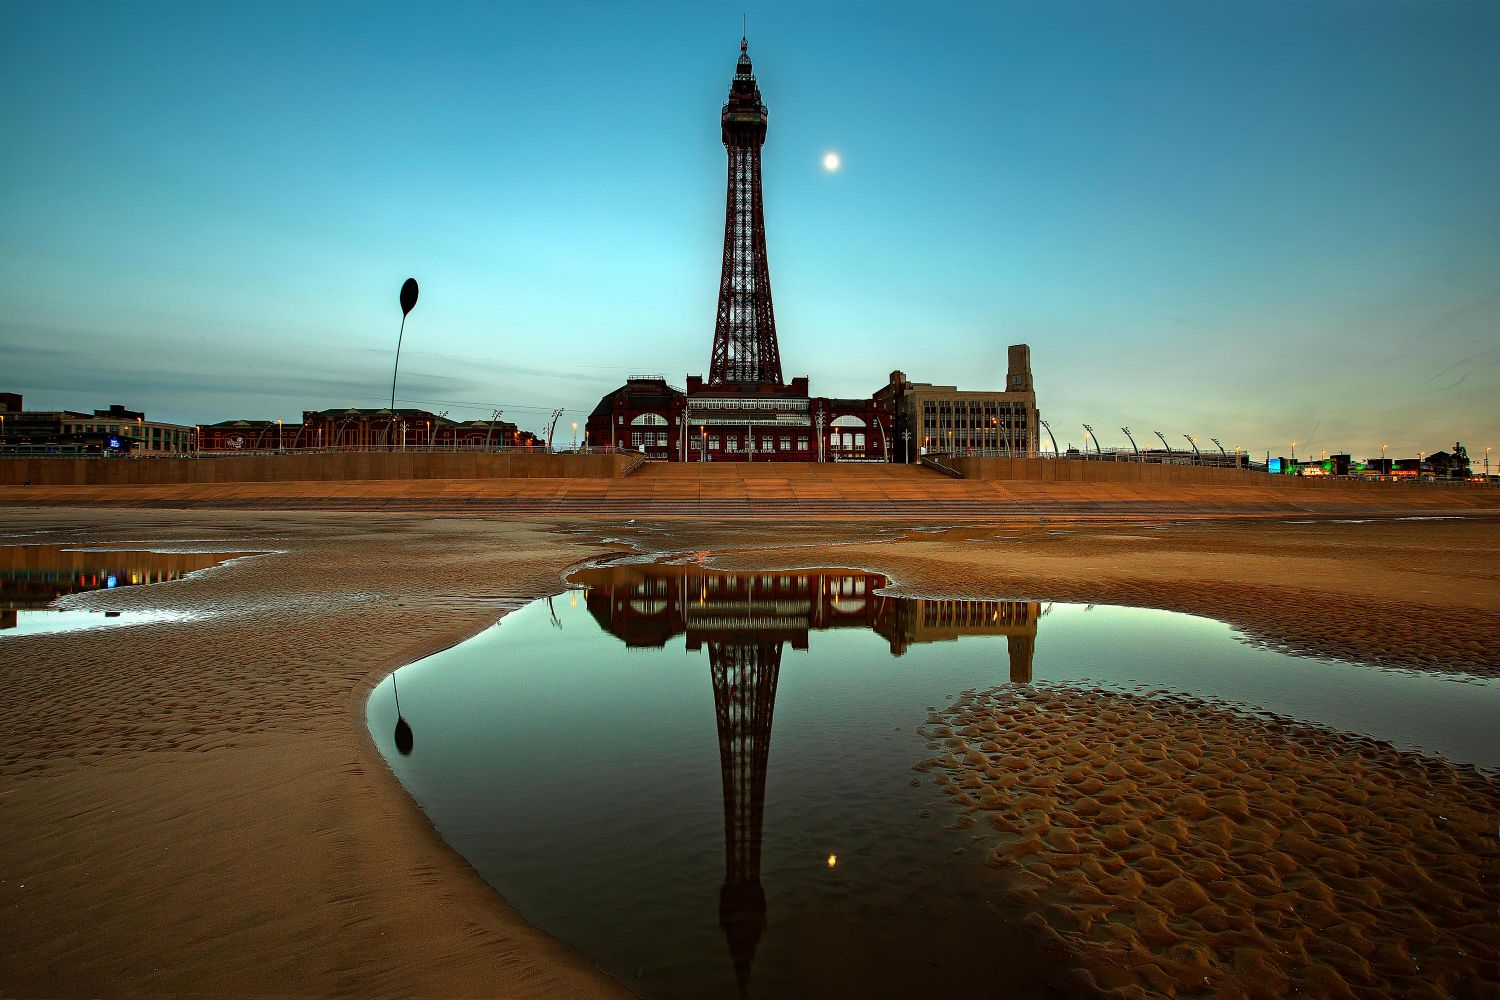 Moonlight over Blackpool Tower at sunset